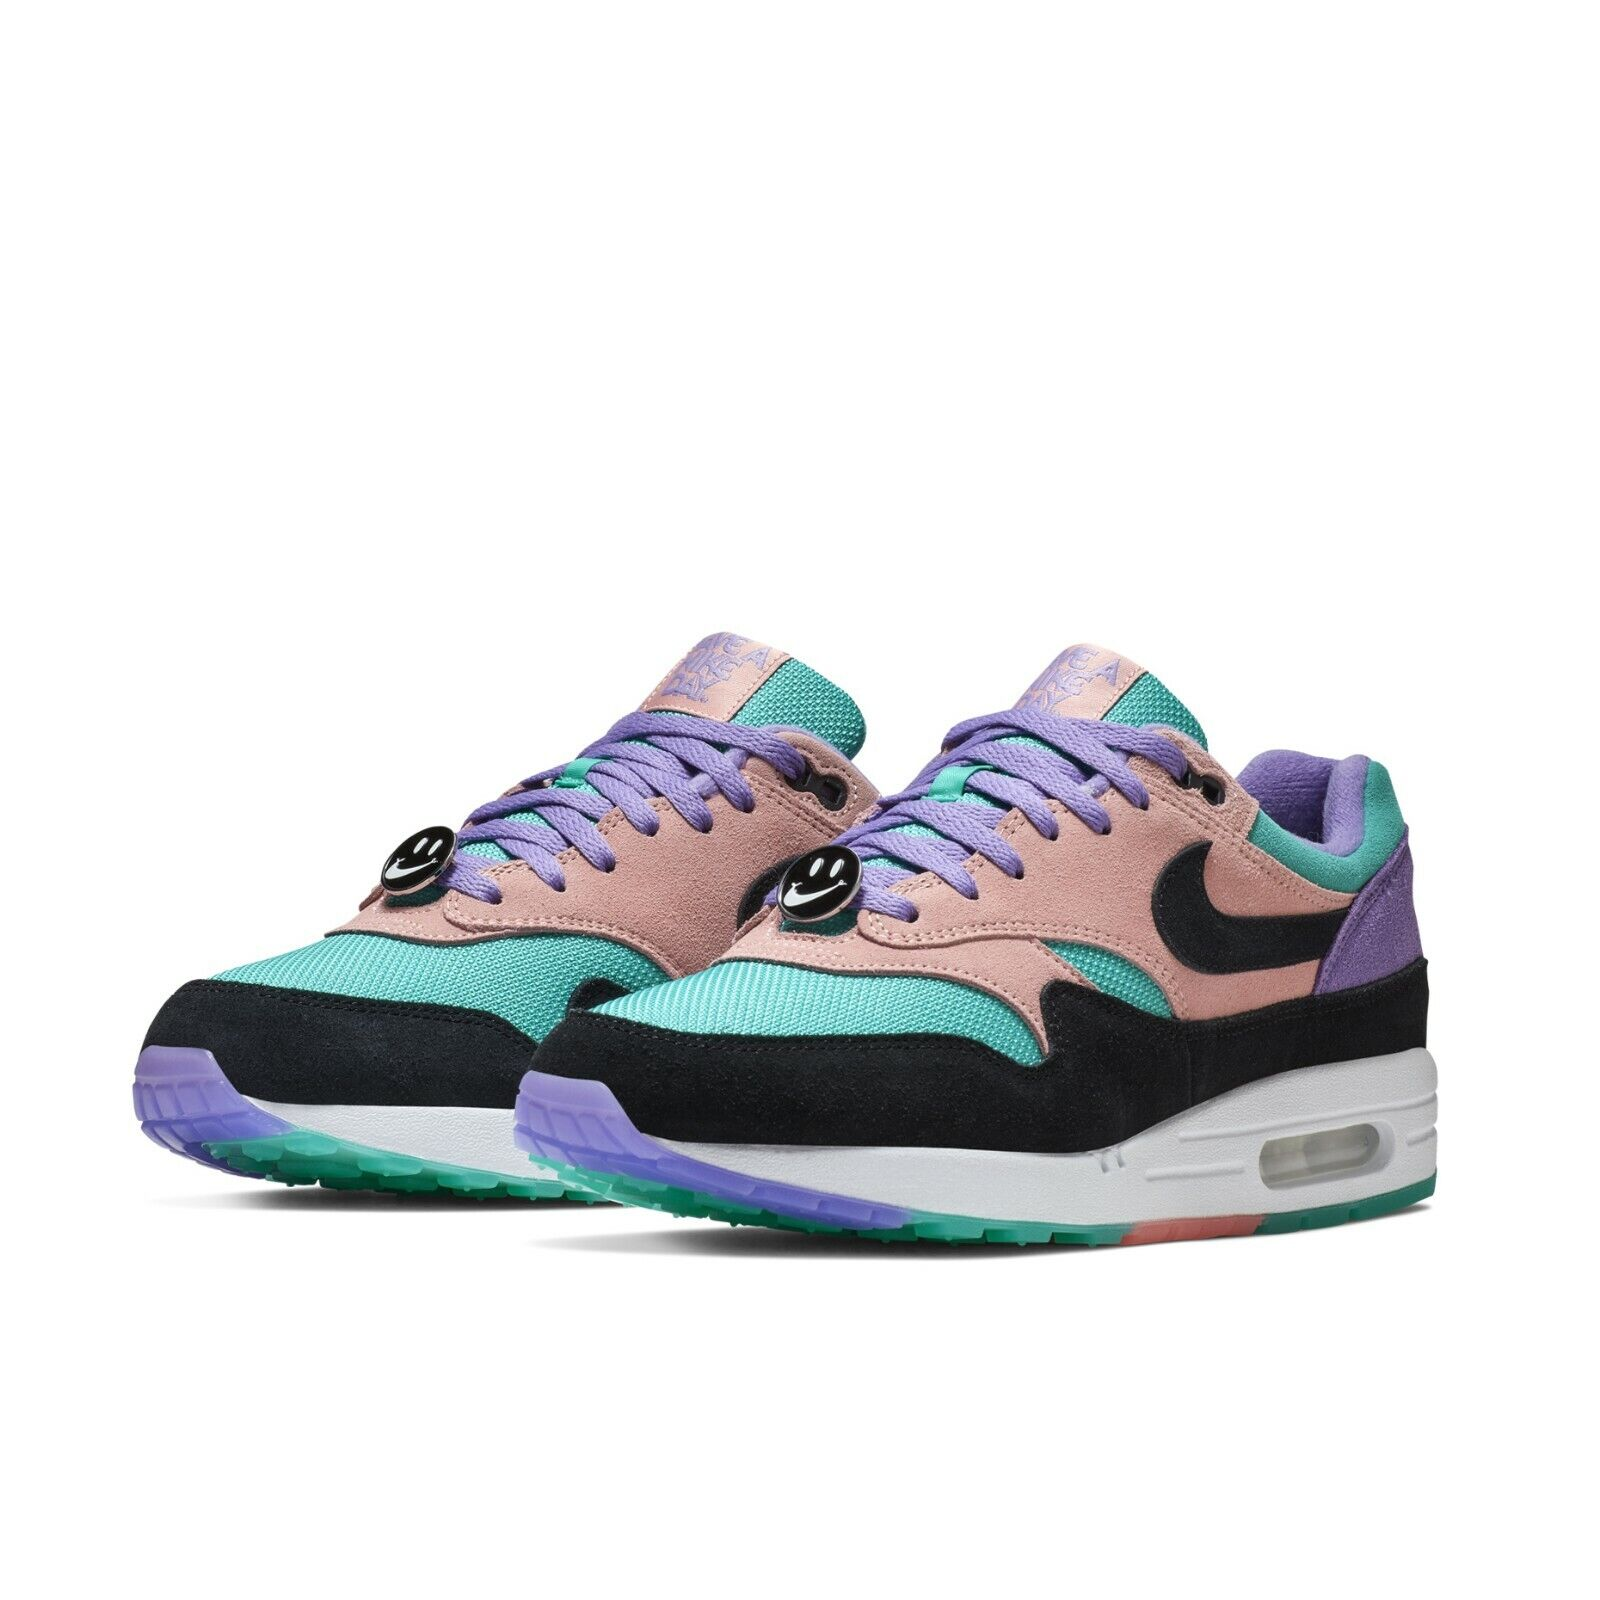 f73277459778 Nike Mens Air Max 1 ND Have A Nike Day Purple Black Coral Sneakers  BQ8929-500